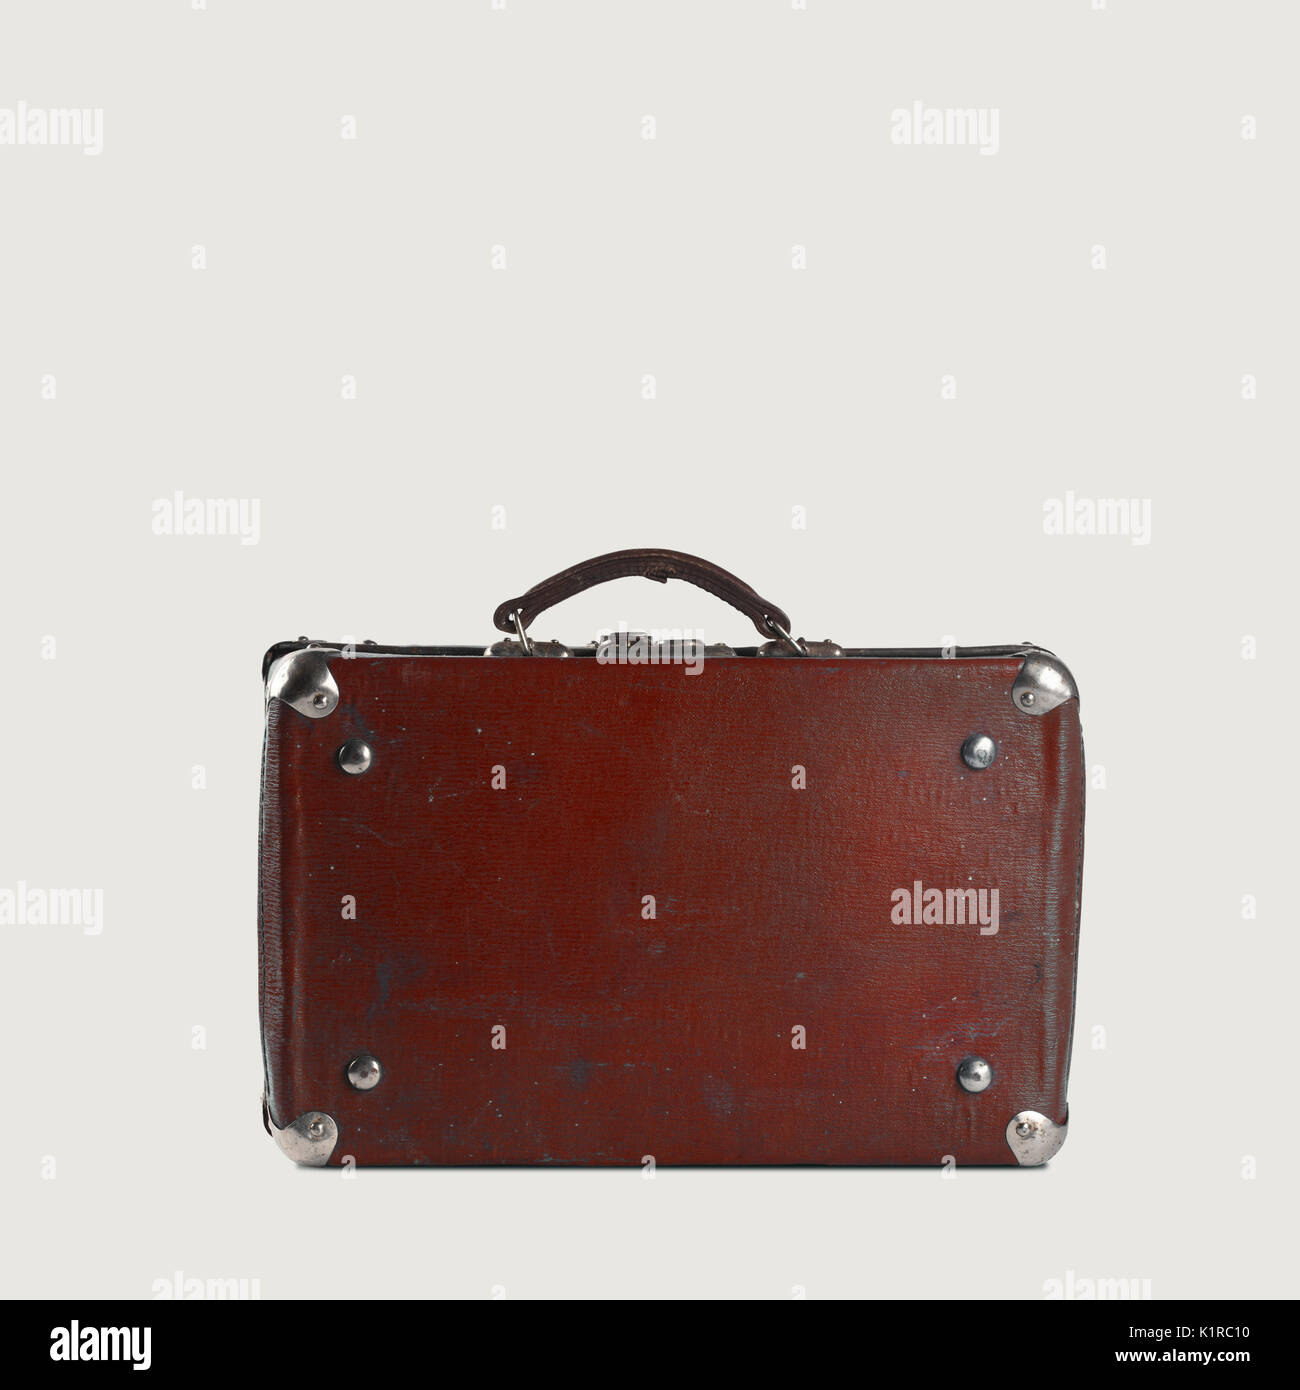 Old-fashioned brown traveller's bag - Stock Image